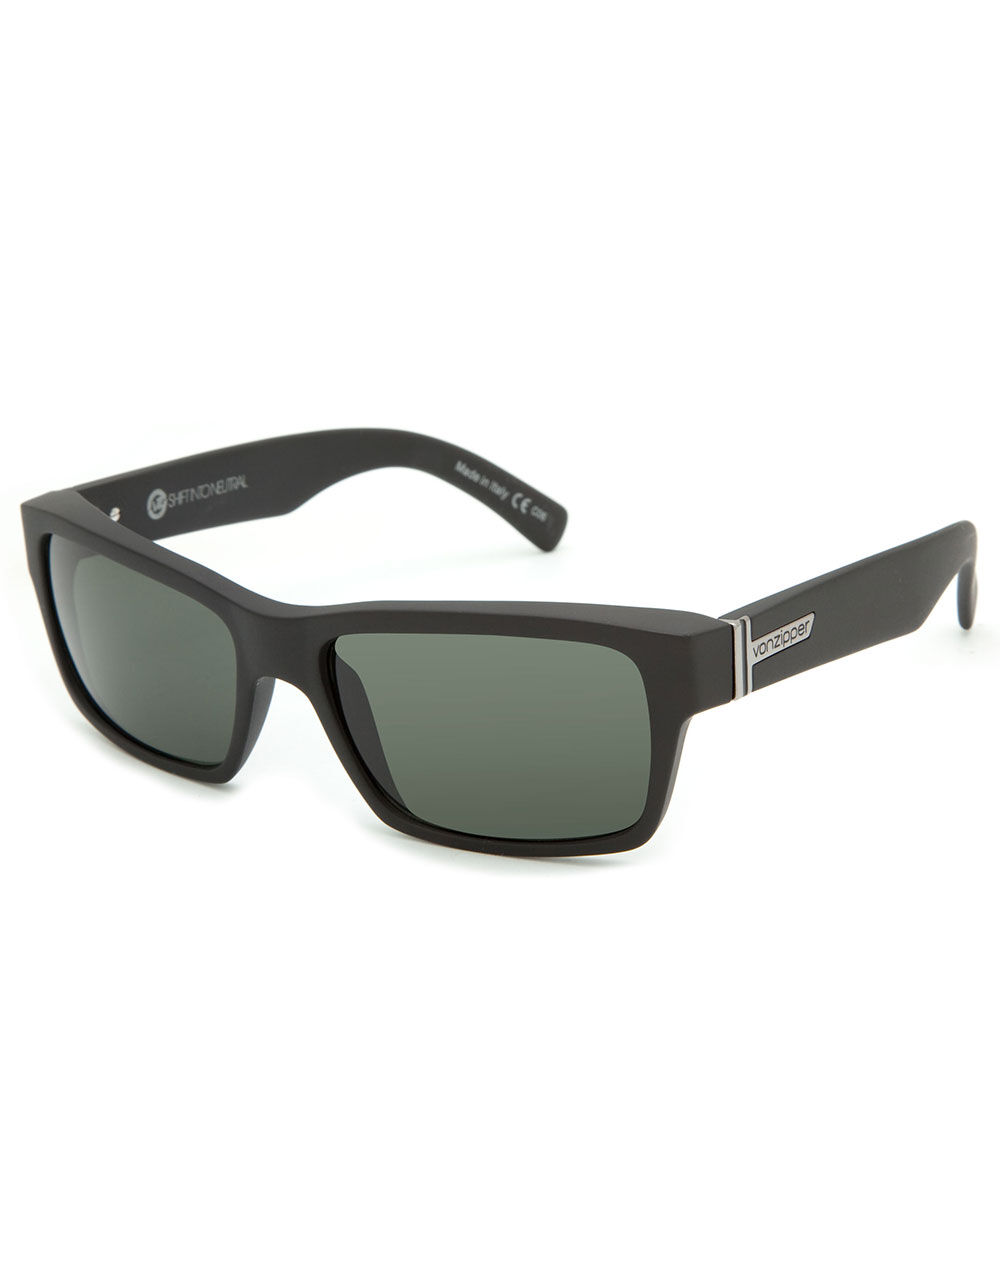 VON ZIPPER SHIFT INTO NEUTRAL FULTON SUNGLASSES